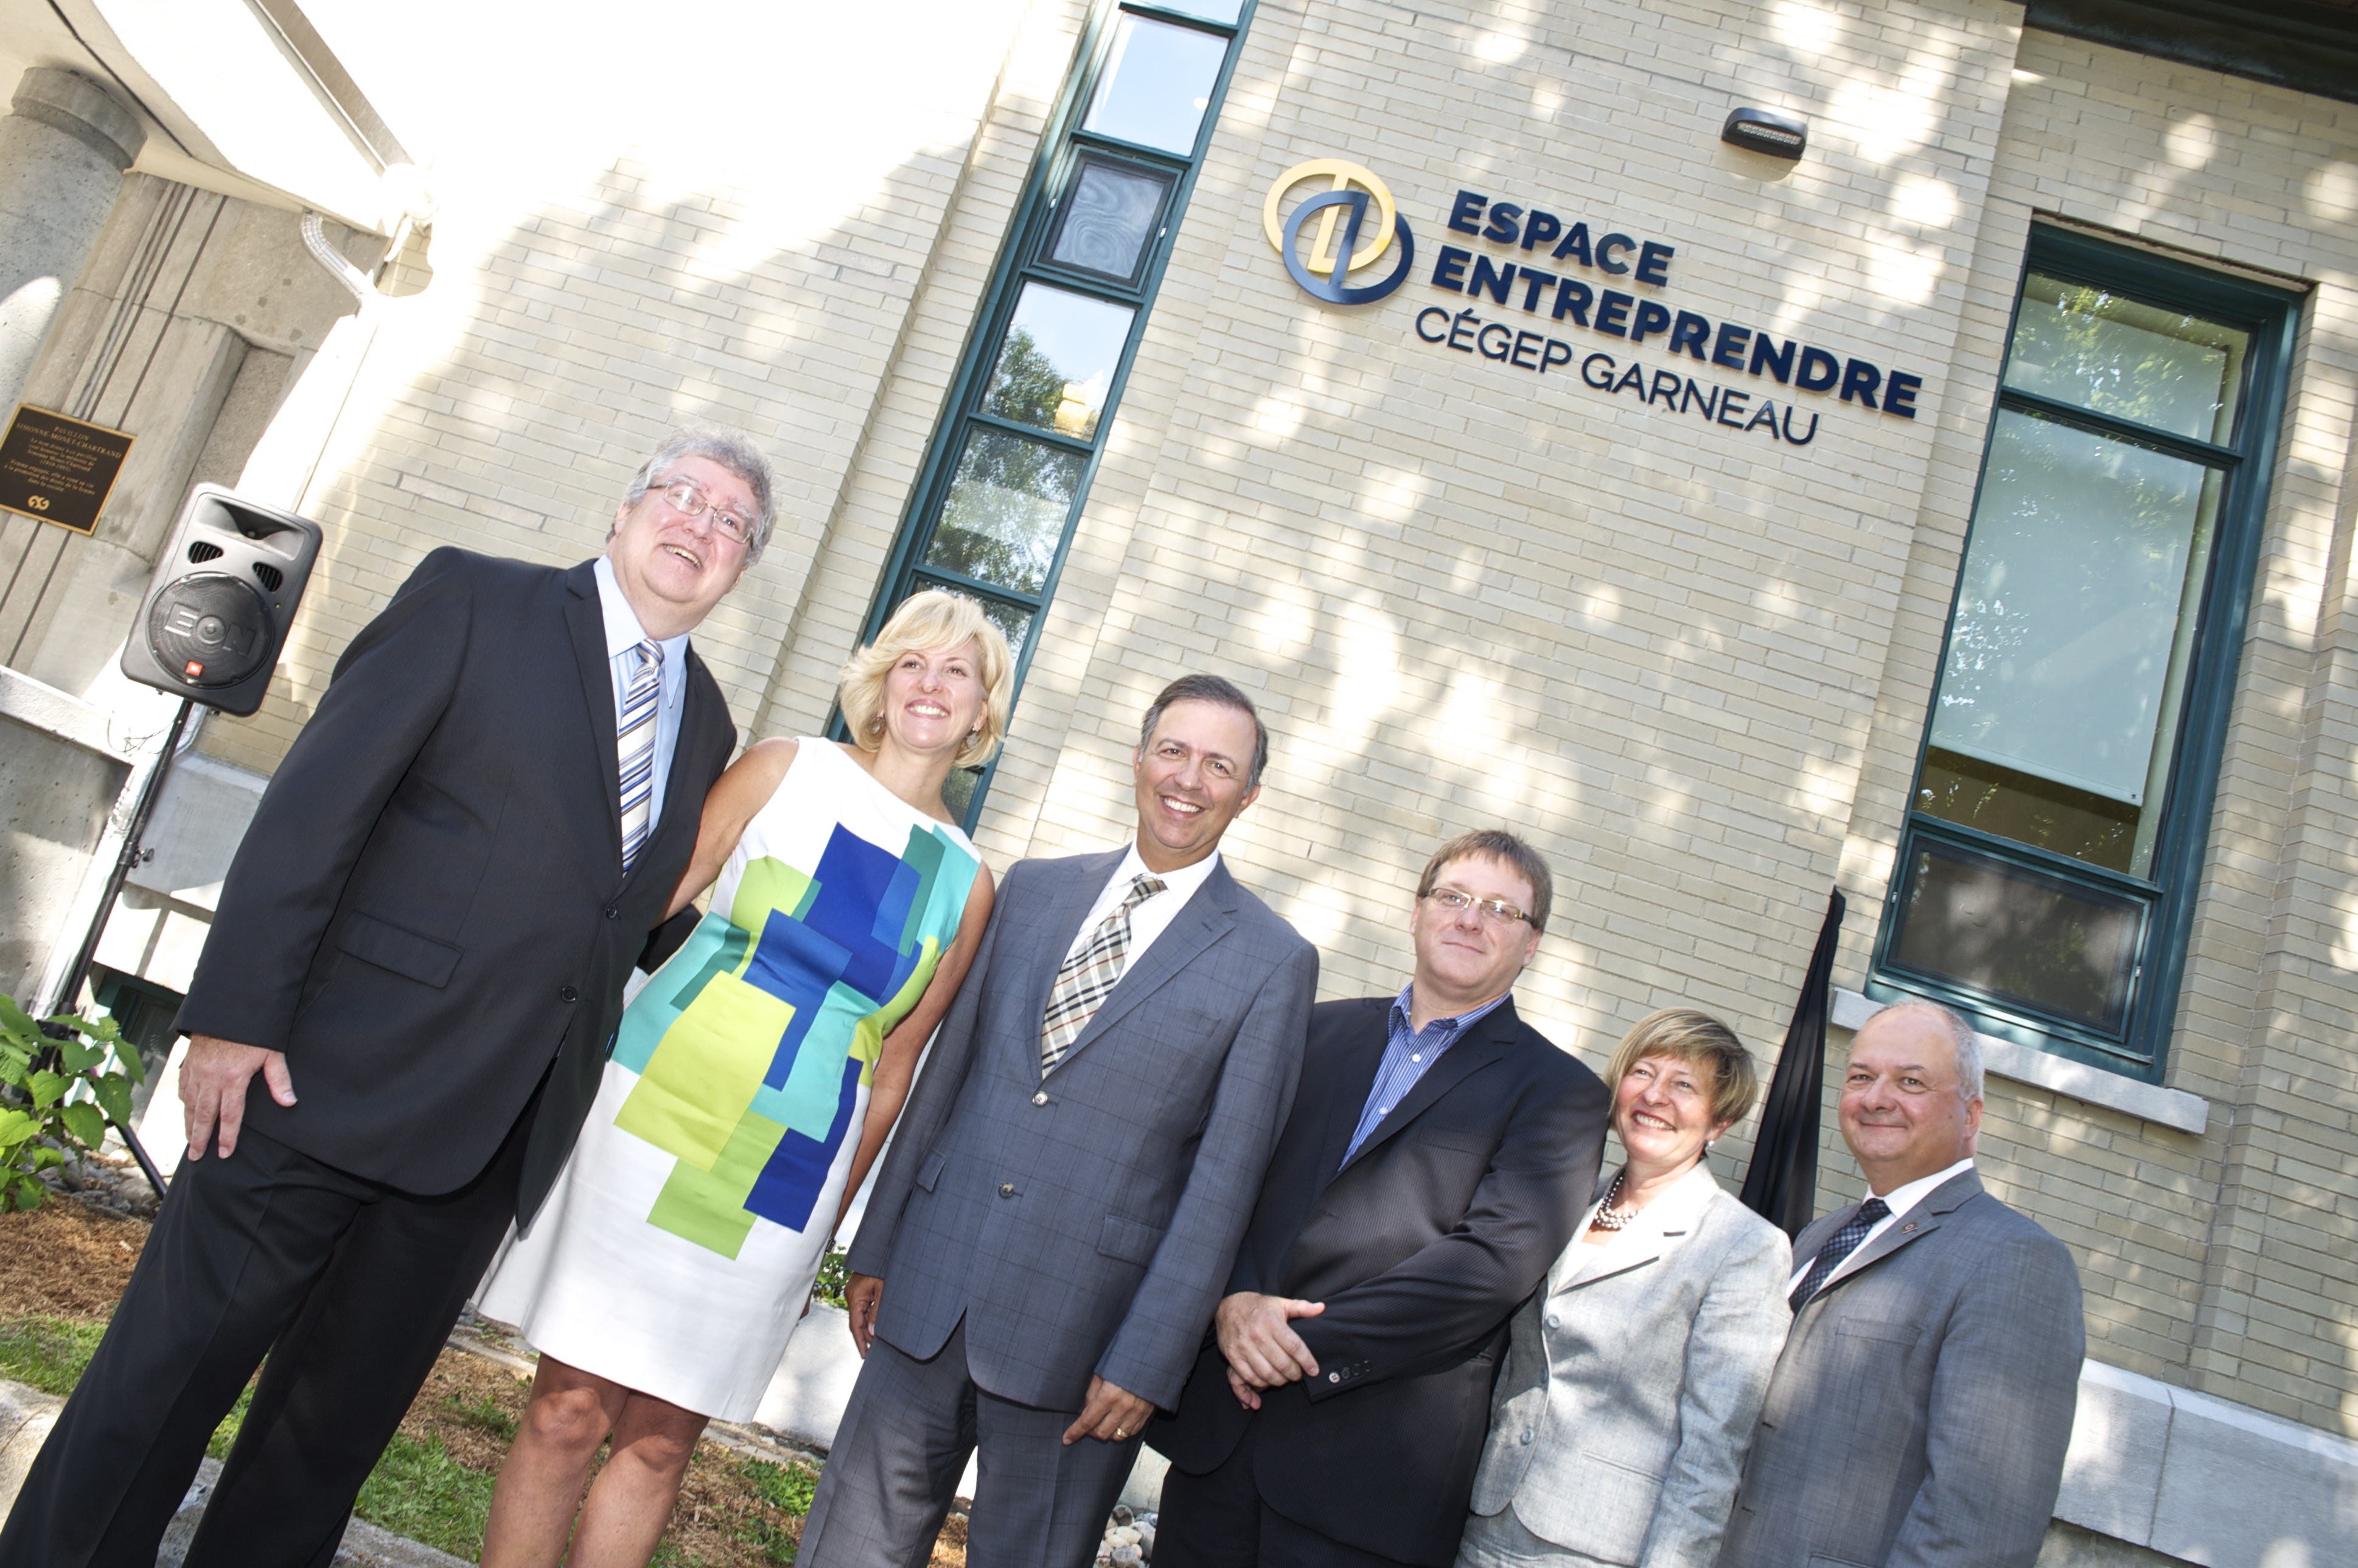 Six people smiling on camera in front of Garneau's L'Espace Entreprendre CEGEP.